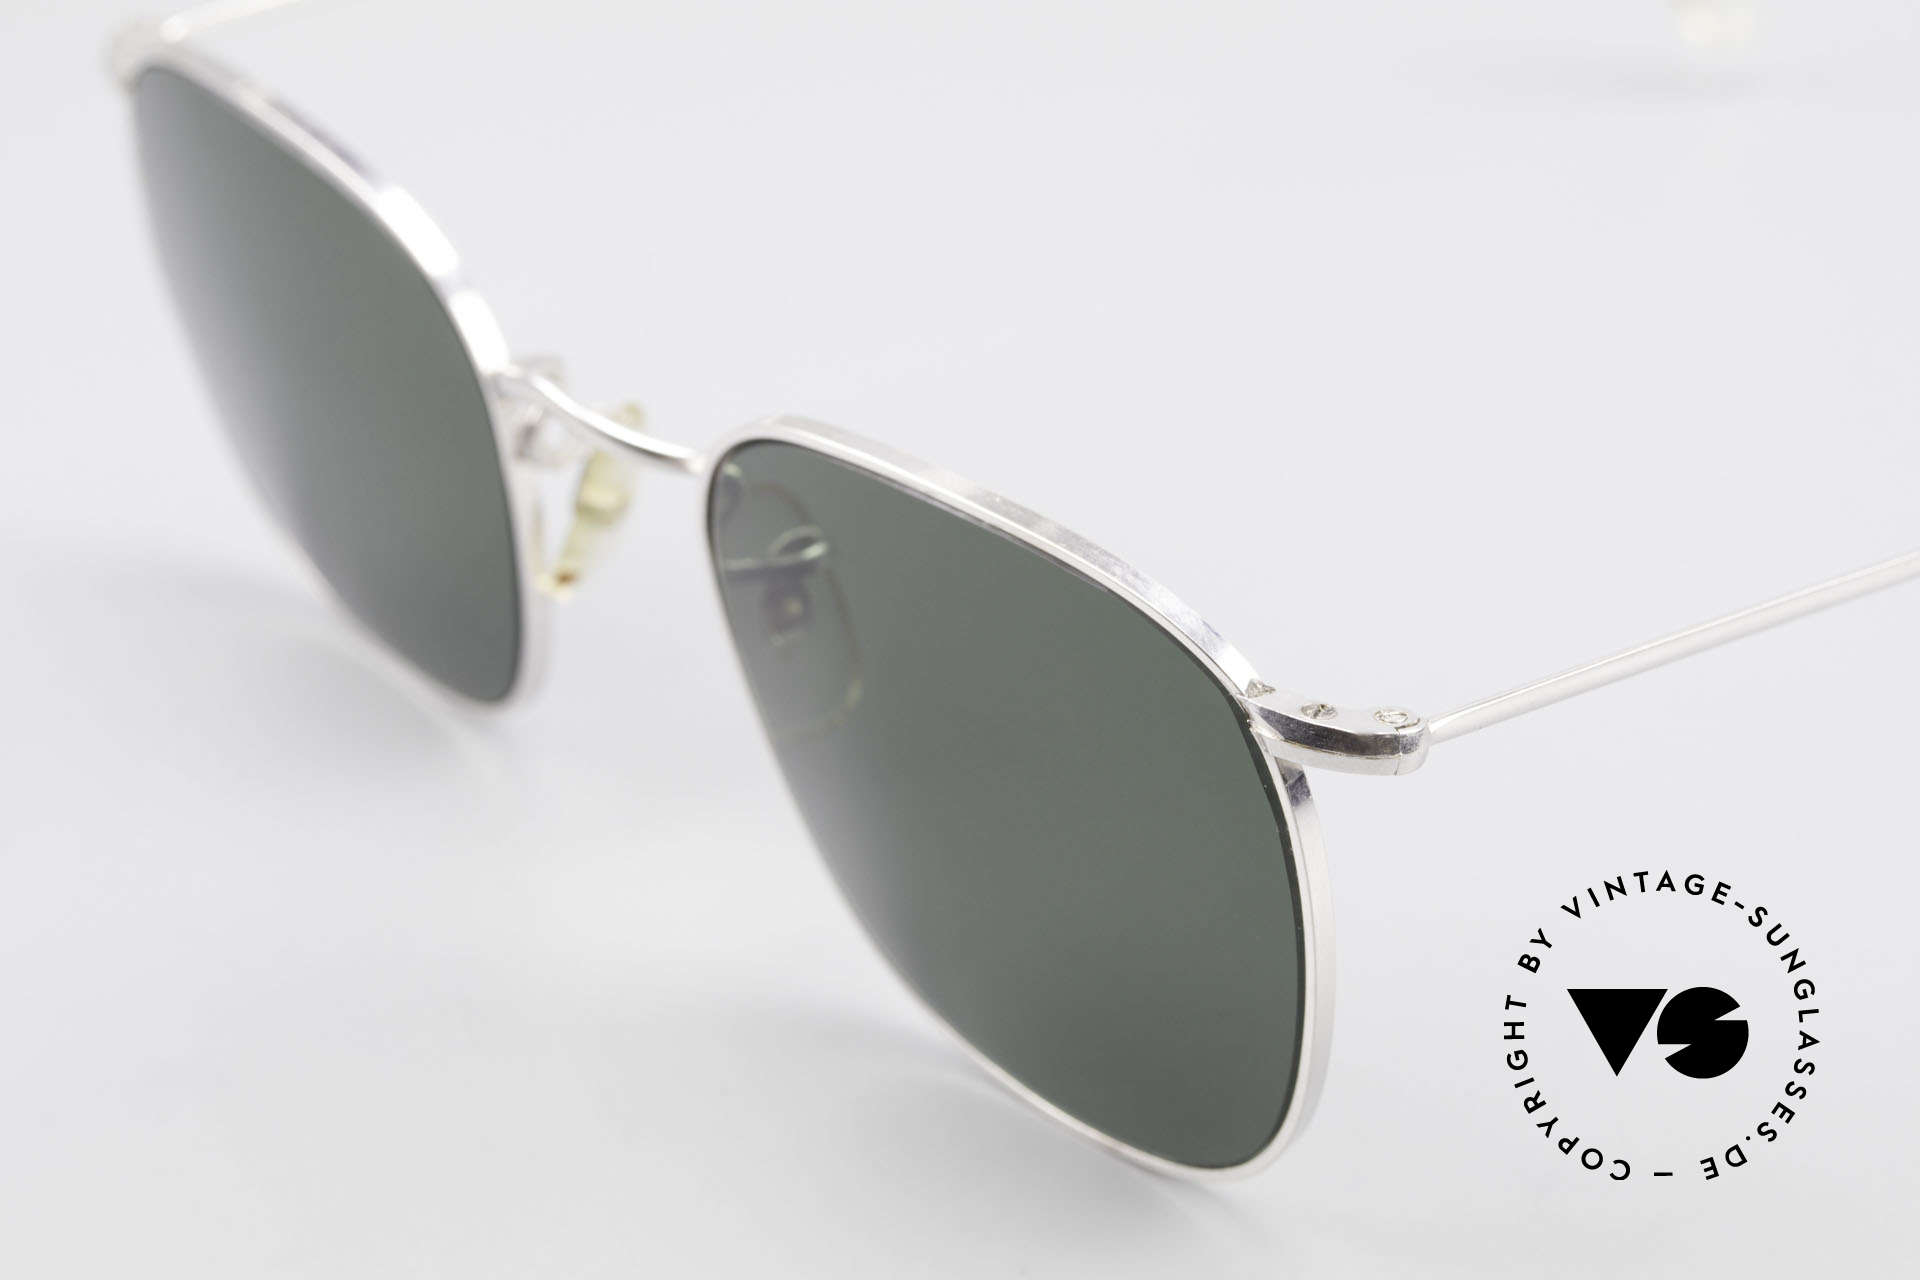 Algha Quadra 50/22 Old Gold Filled Sunglasses, gold-filled frame 20/1000 (20g gold / 1000g metal), Made for Men